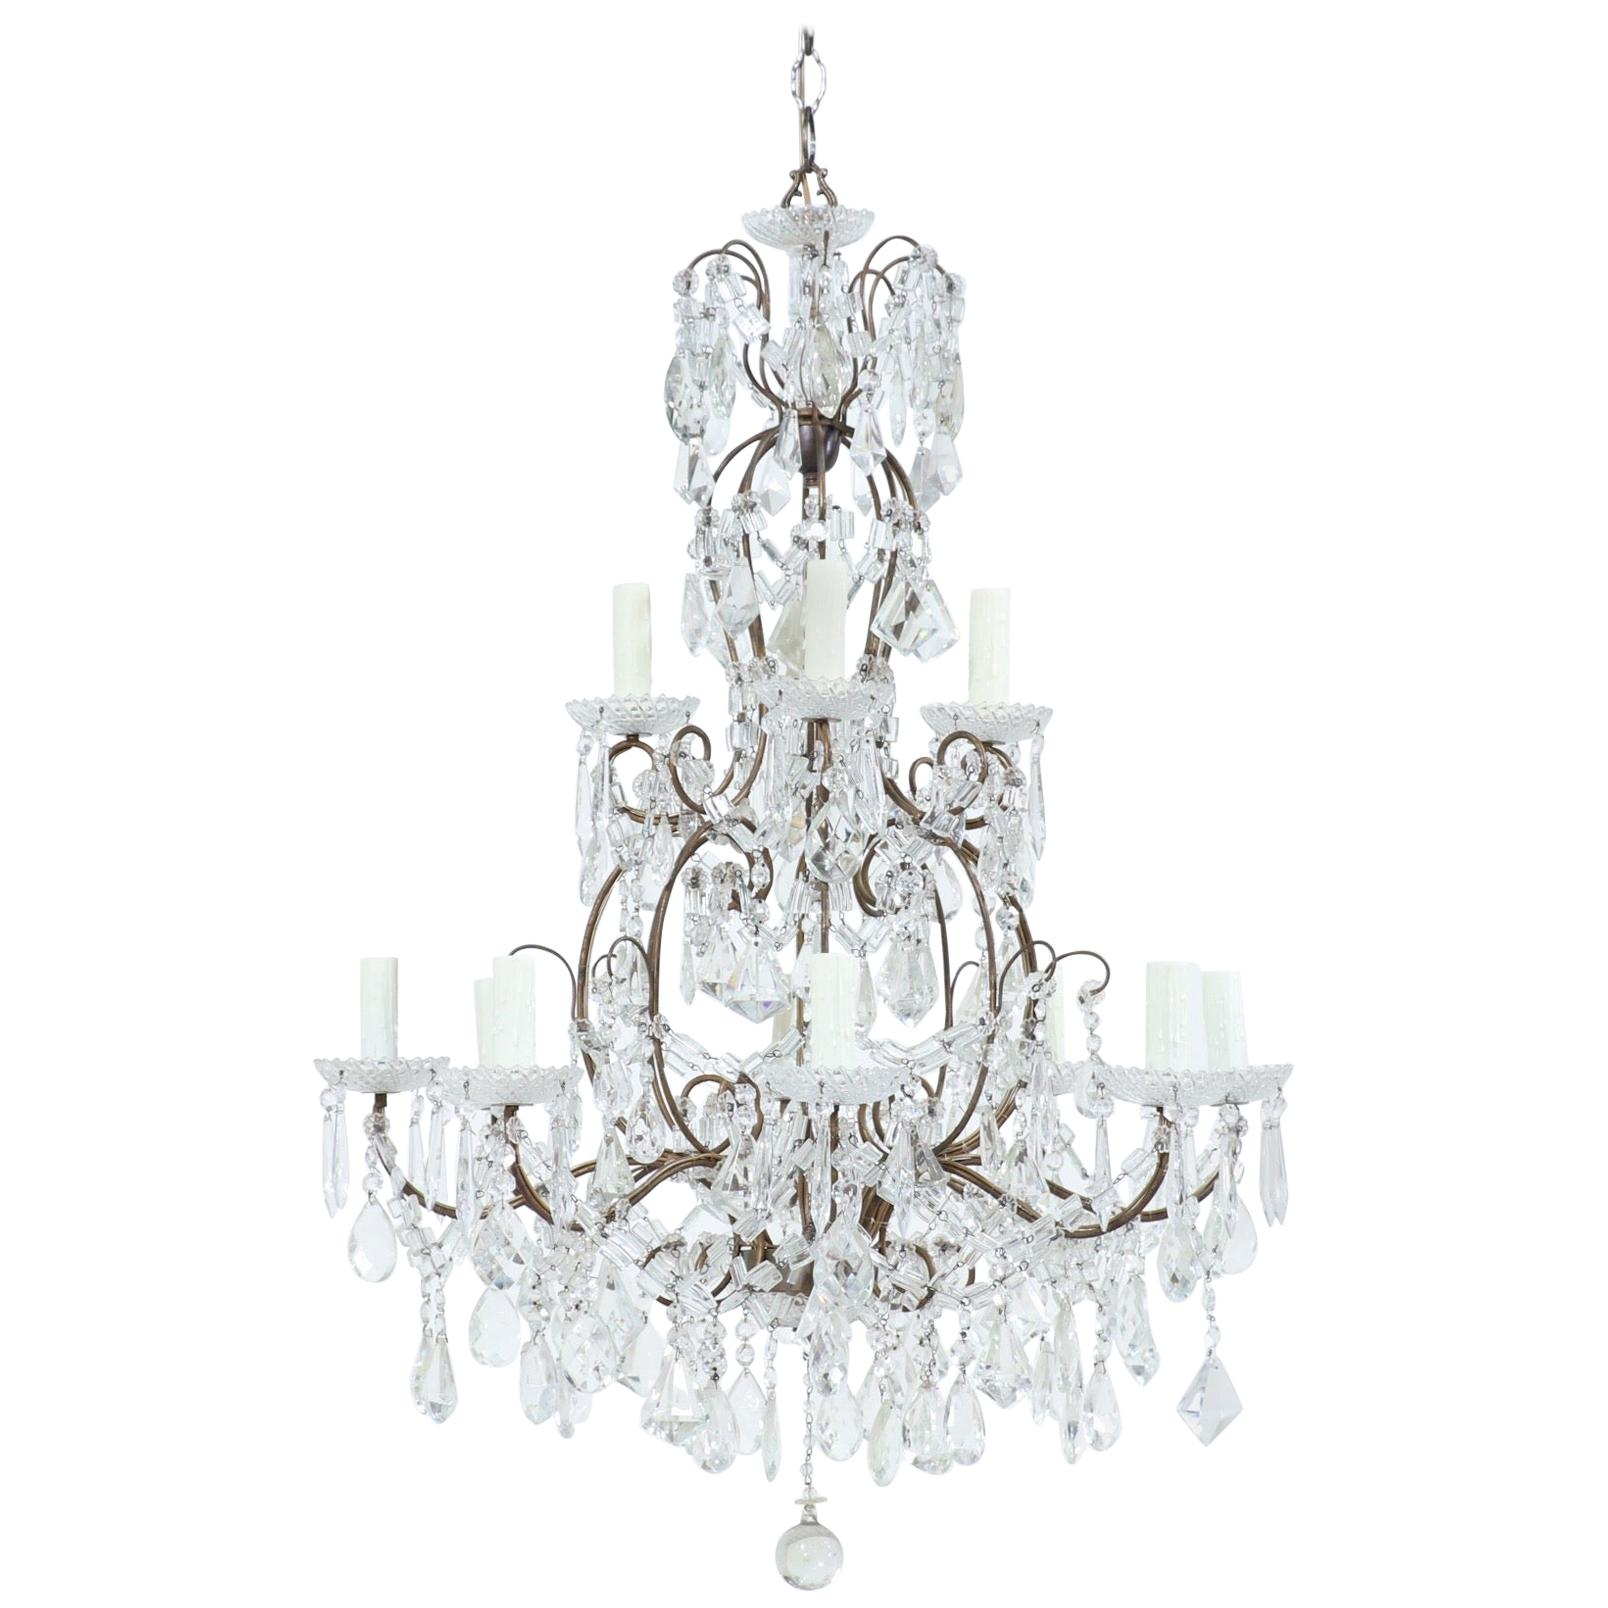 Italian Two-Tier Iron and Crystal Beaded Chandelier